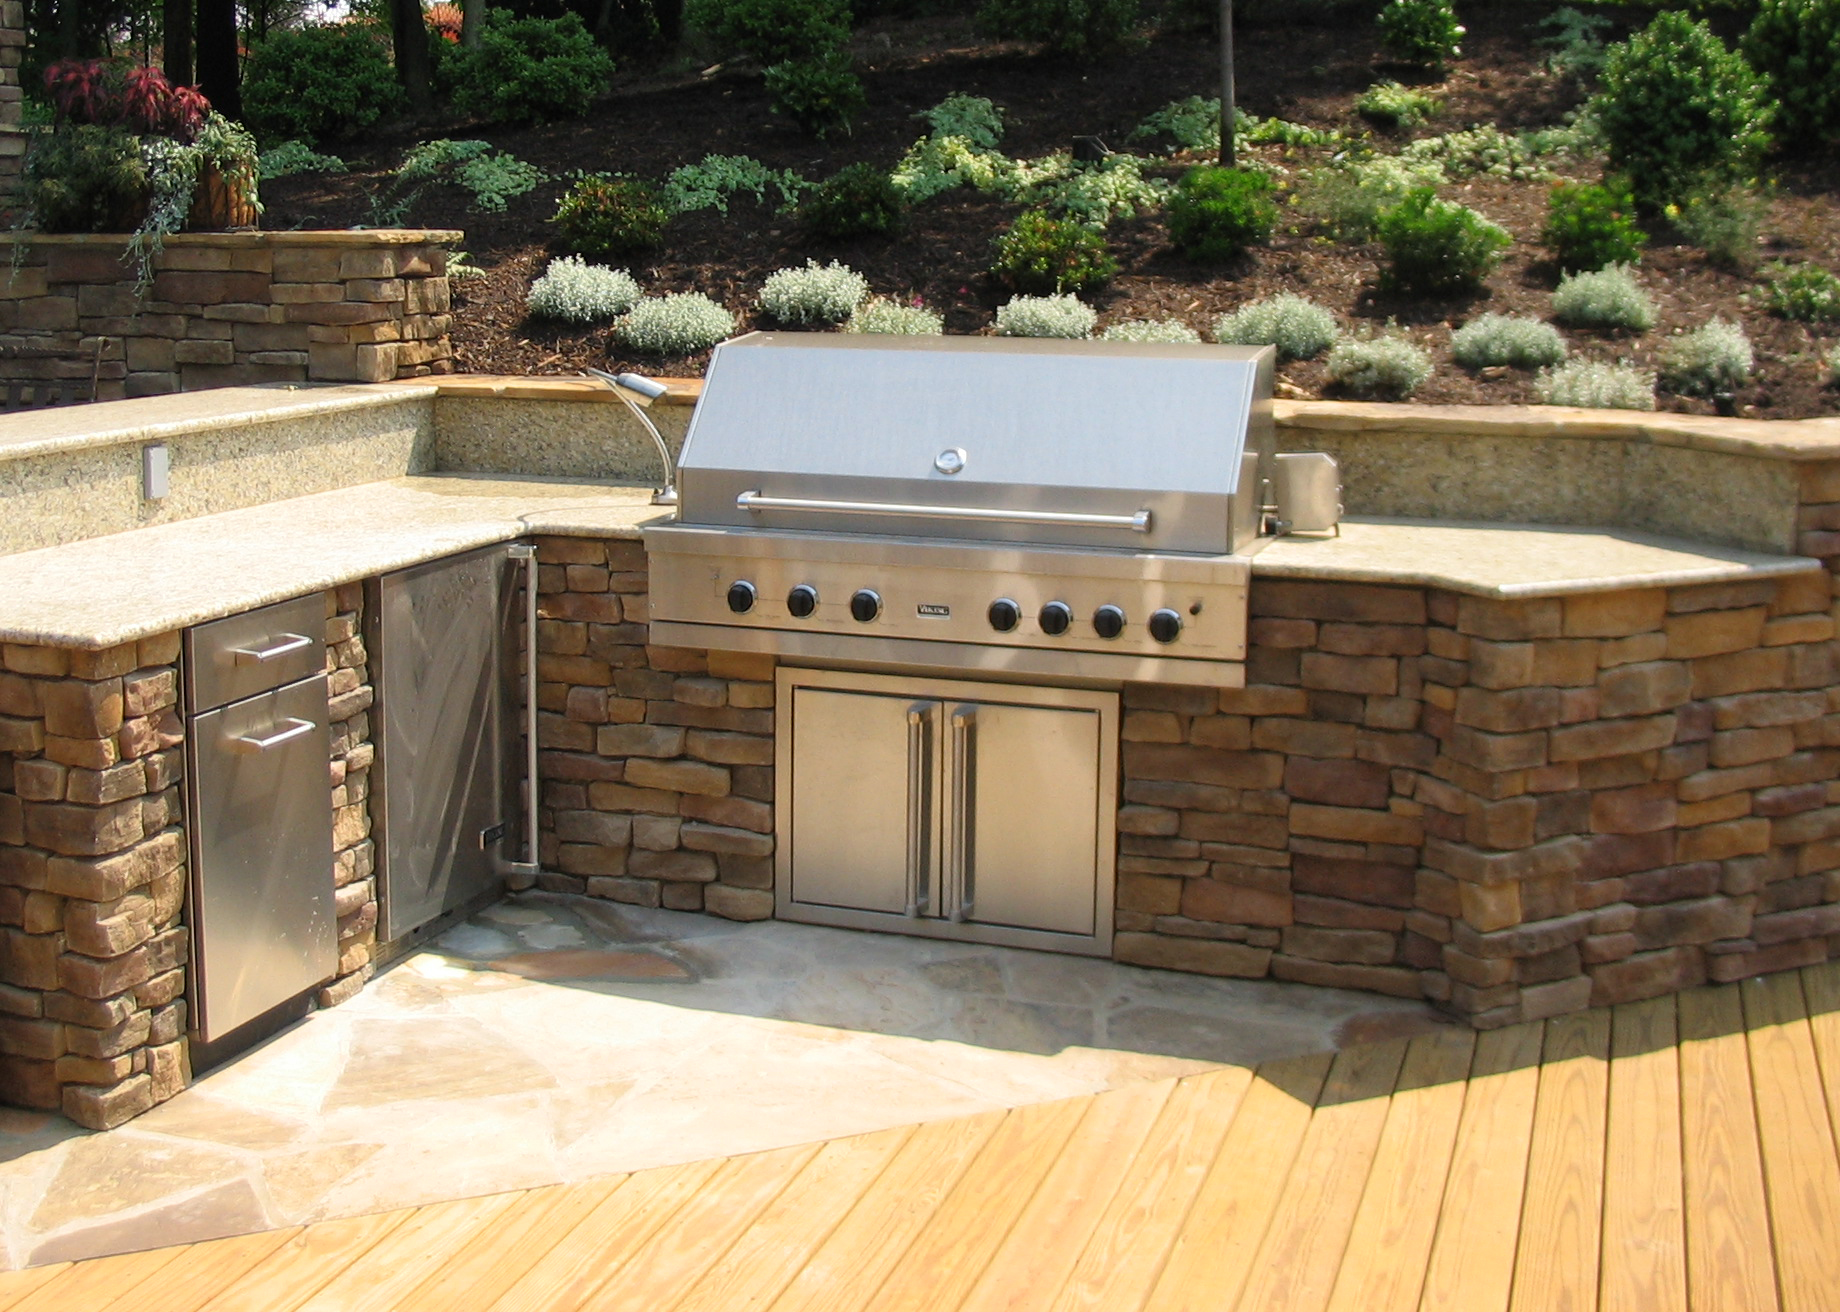 Designing an Outdoor Kitchen - Revolutionary Gardens